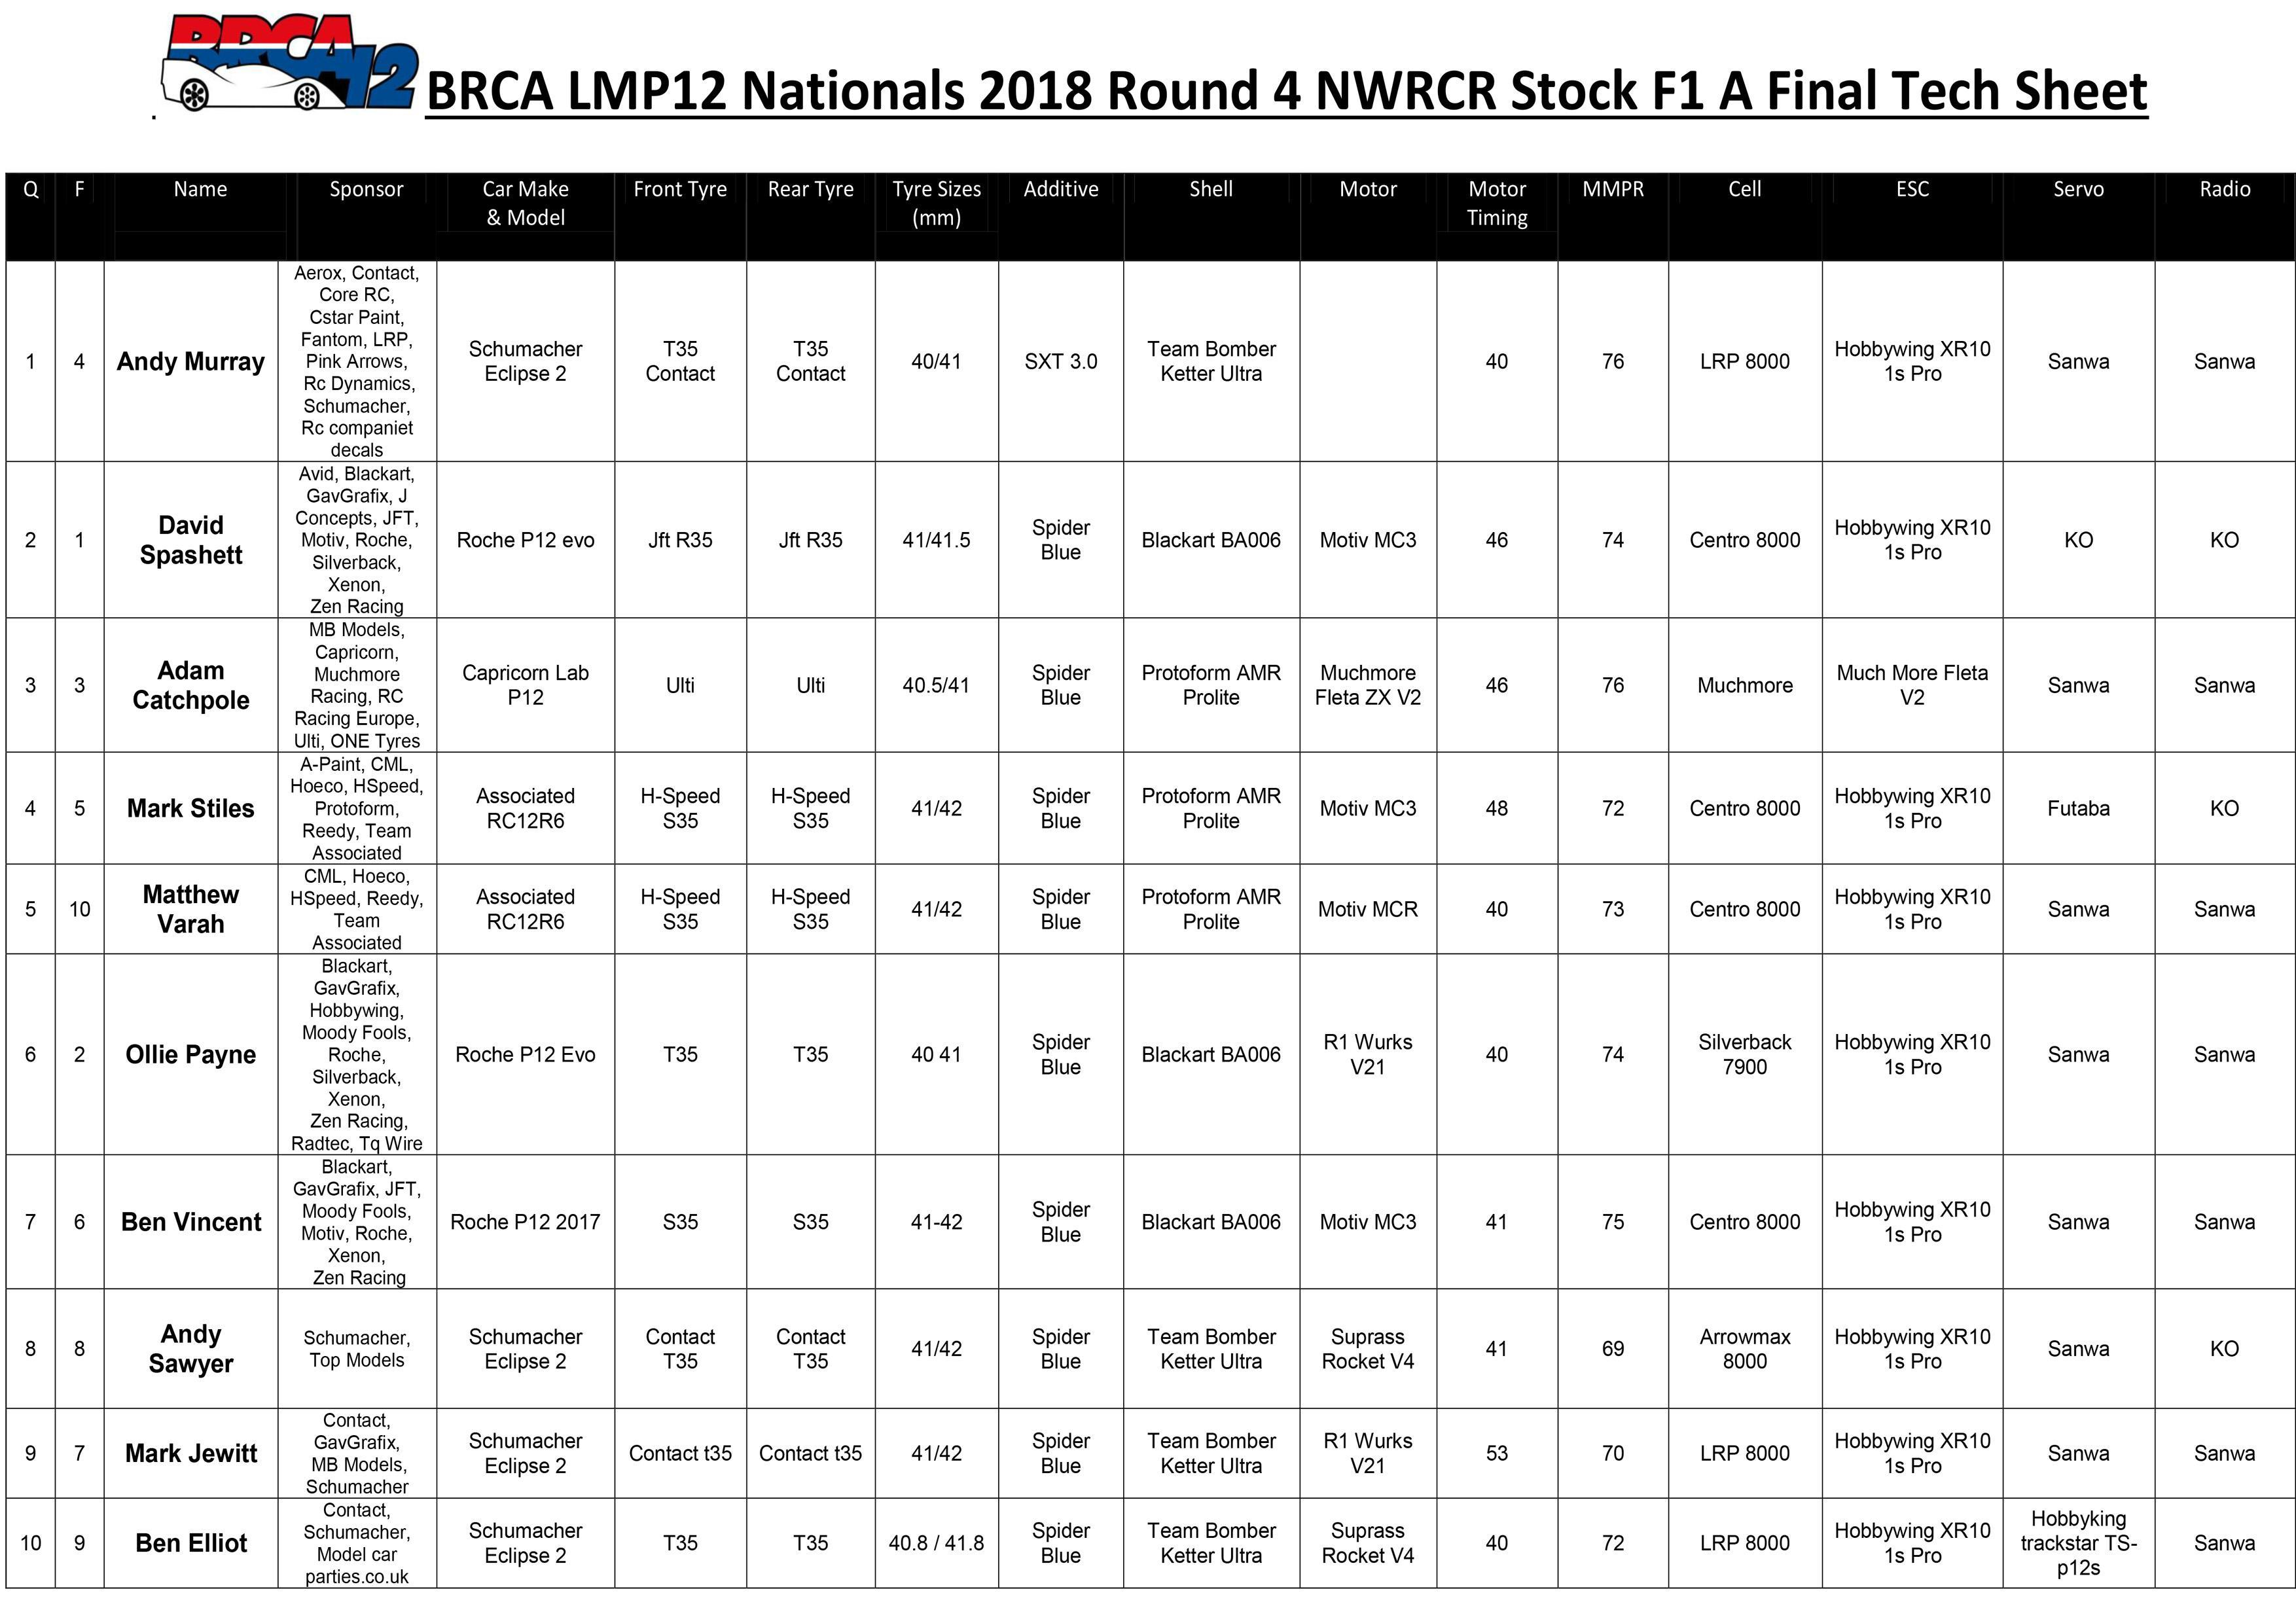 NWRCR Stock F1 Tech Sheet